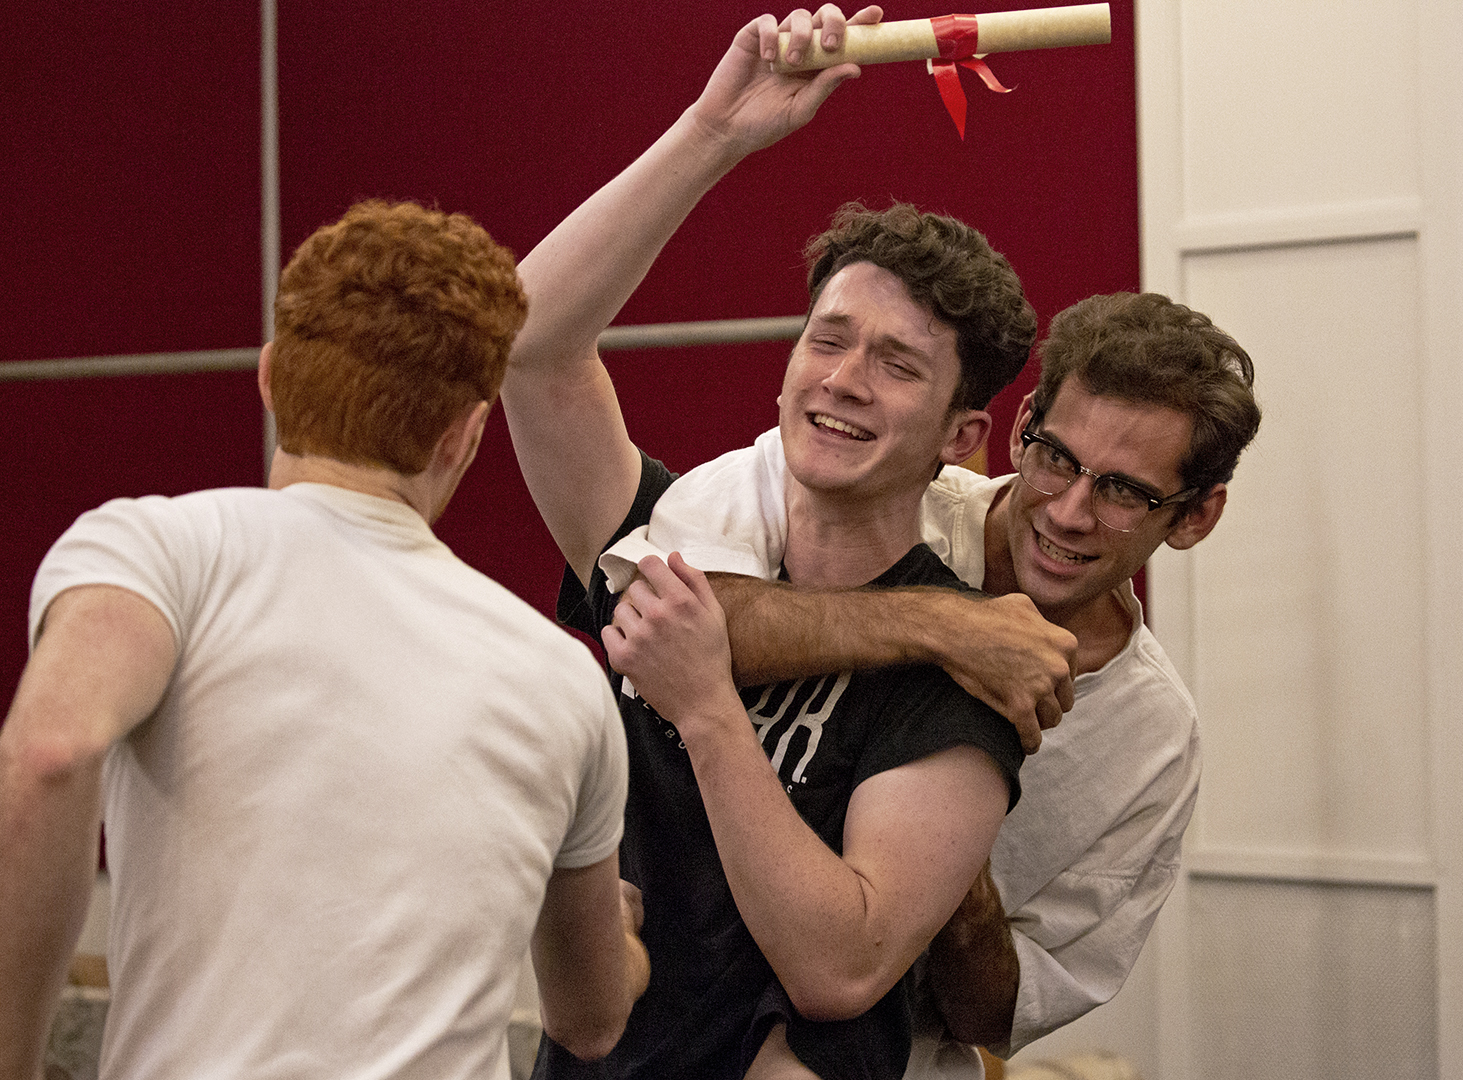 Connor+Keef%2C+Senior%2C+horse+plays+with+Jacob+Chamberlain%2C+and+Colby+Clark+during+rehearsals+for+the+play+Tartuffe+in+Gordon+Wilson+Hall.+The+show+runs+from+October+4th+through+October+the+9th.+%22It+has+been+the+most+fun+to+be+these+characters+with+this+cast%2C+everyone+is+bringing+their+best+and+taking+up+as+much+space+as+they+can%2C+which+has+made+for+a+very+interesting+dynamic%2C%22+Keef+said.